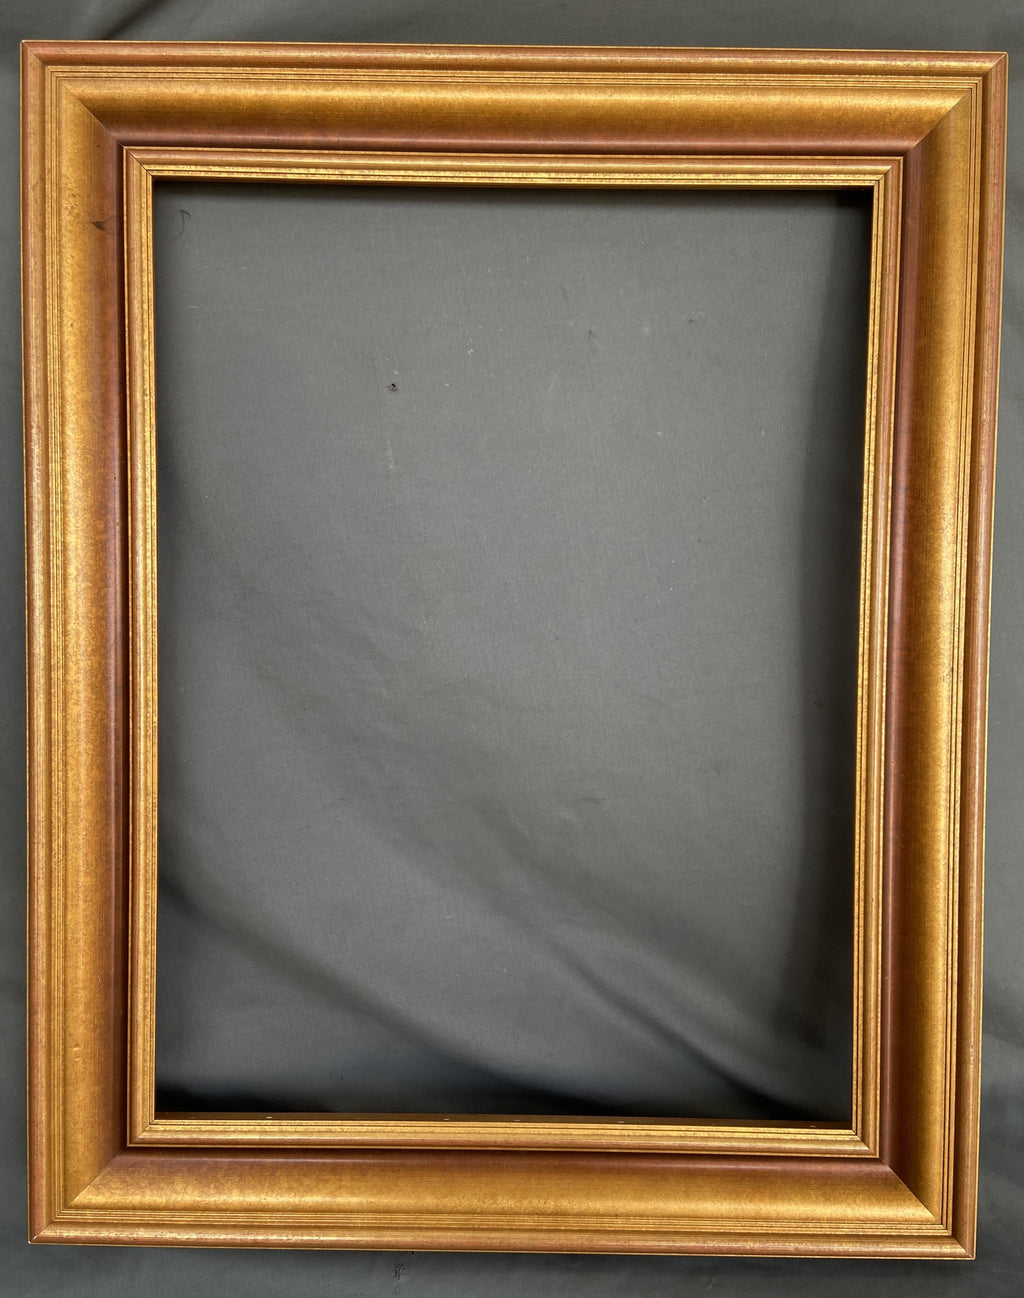 GOLD FRAME WITH SLIGHT RED COLORING